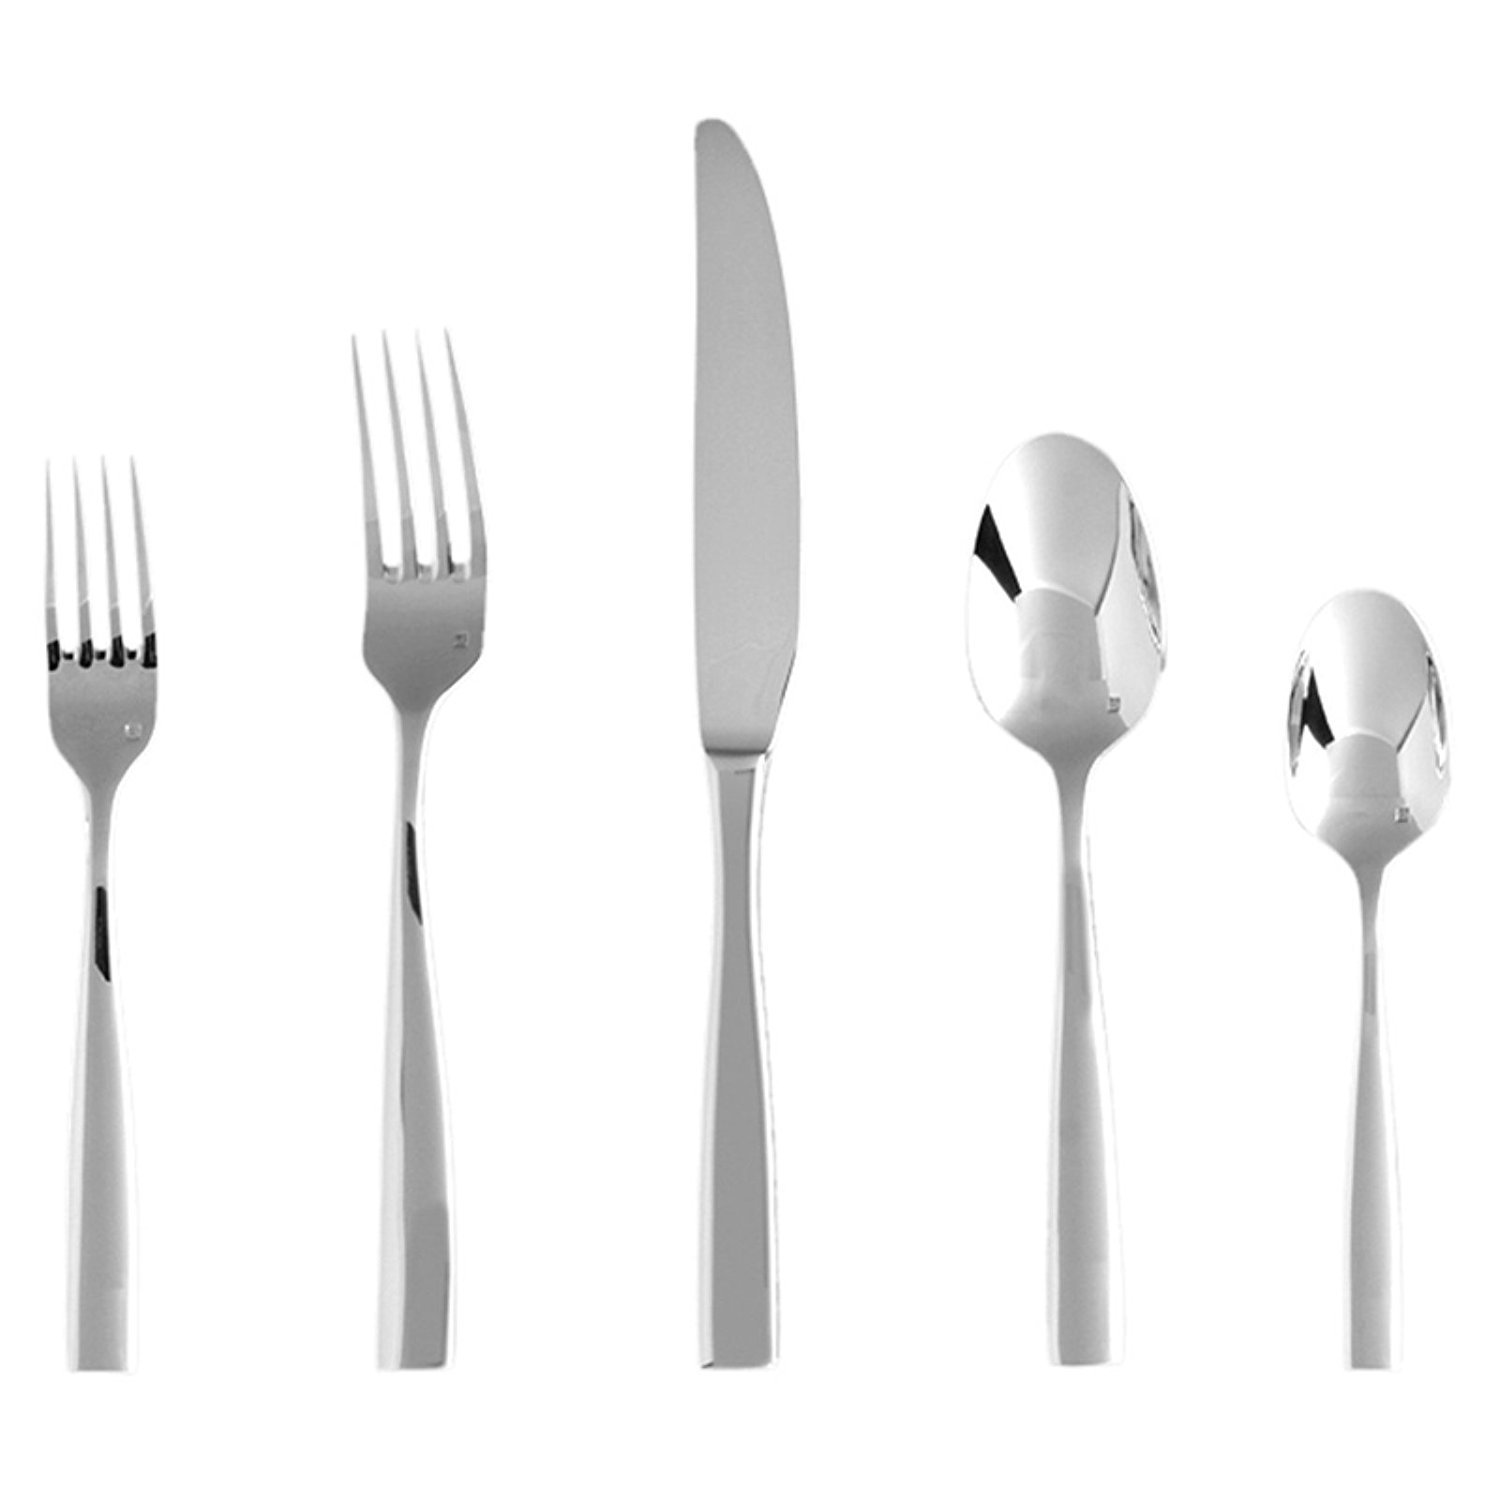 Fortessa Lucca 5 Piece Stainless Steel Flatware Set in Silver